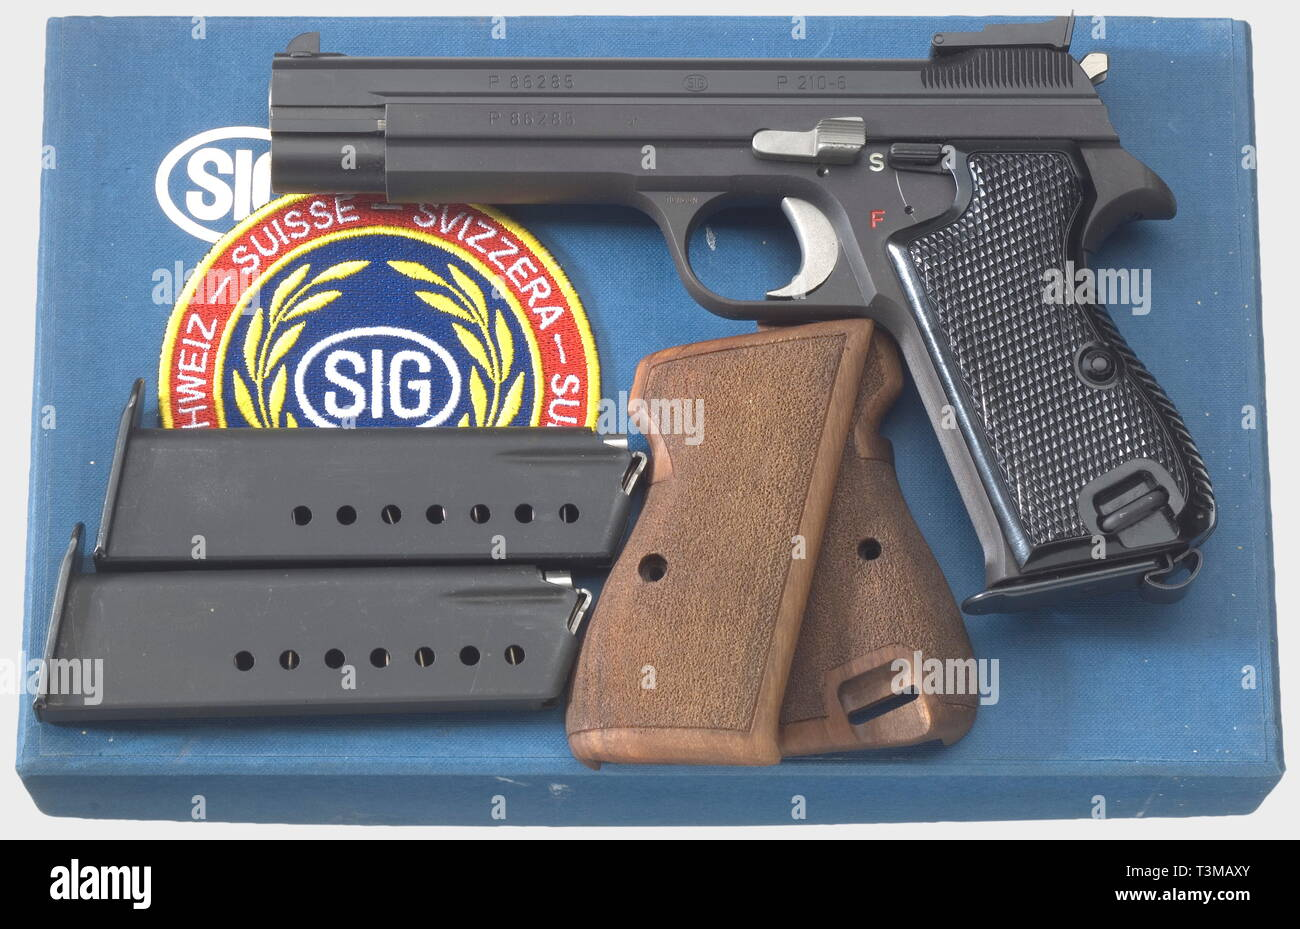 Tiro Deportes, pistolas, Suiza, SIG 210-6, calibre 9 mm, Additional-Rights-Clearance-Info-Not-Available Imagen De Stock